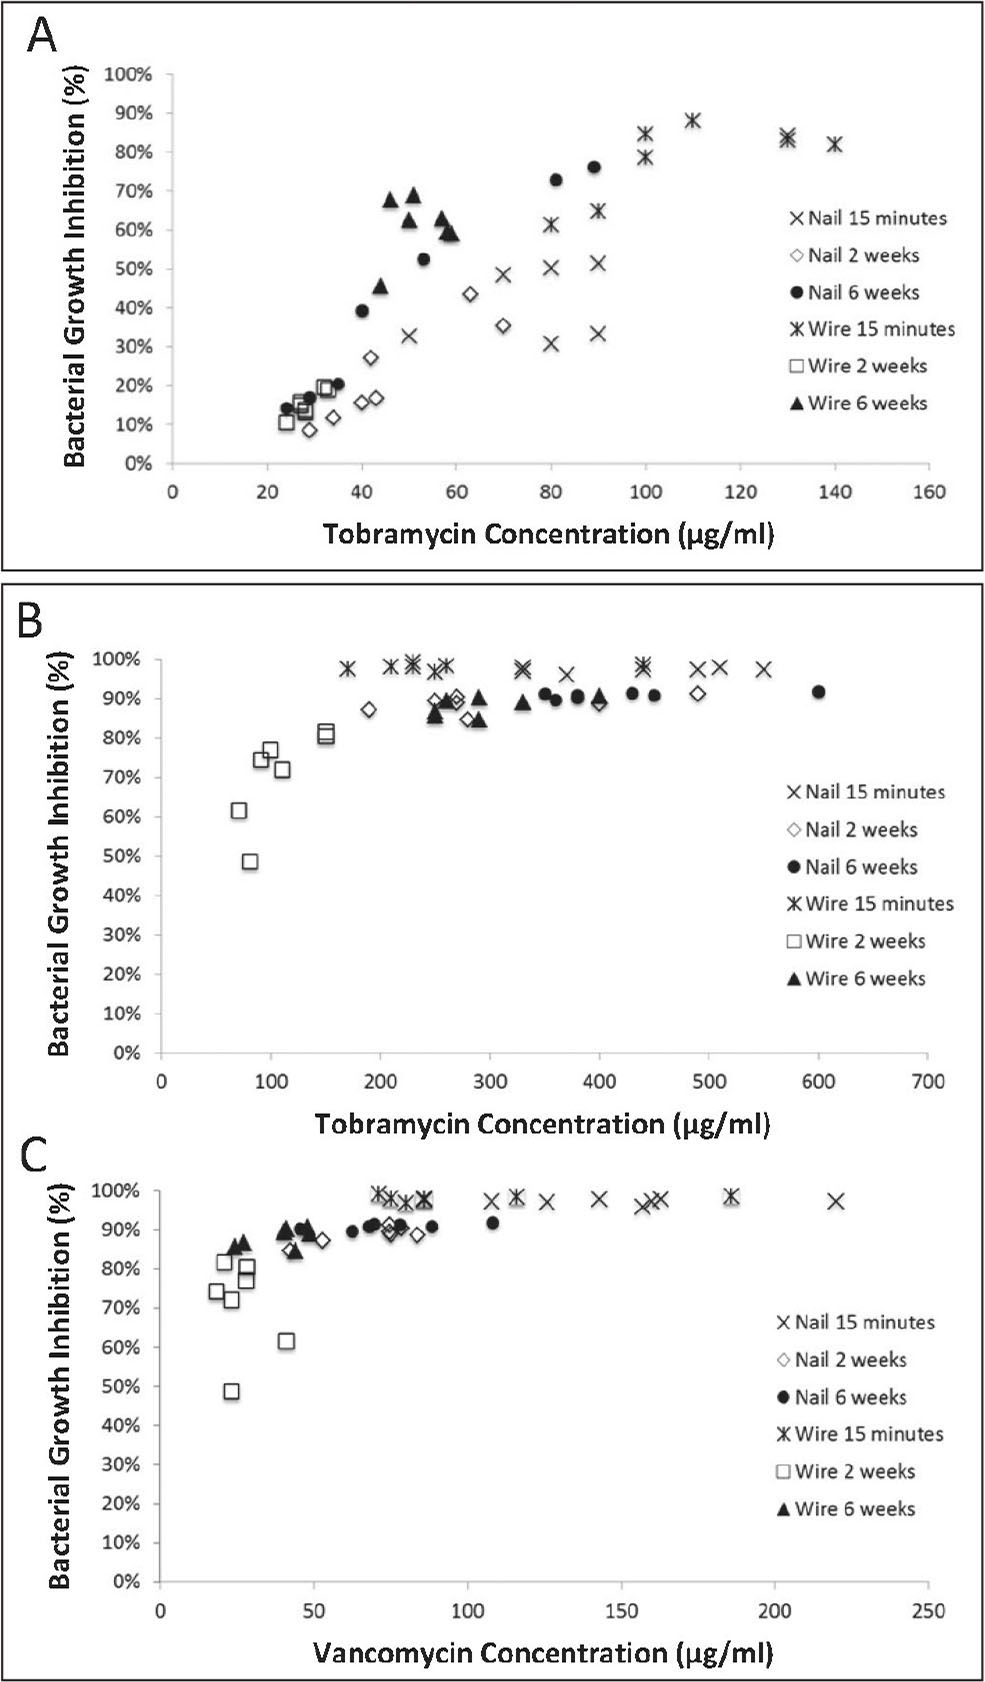 Efficacy of antibiotic in the eluent for inhibiting bacterial growth at various time points after cement formation in constructs coated with cement containing 1 g tobramycin (A) and constructs coated with cement containing 2.2 g tobramycin (B) plus 1 g vancomycin (C).